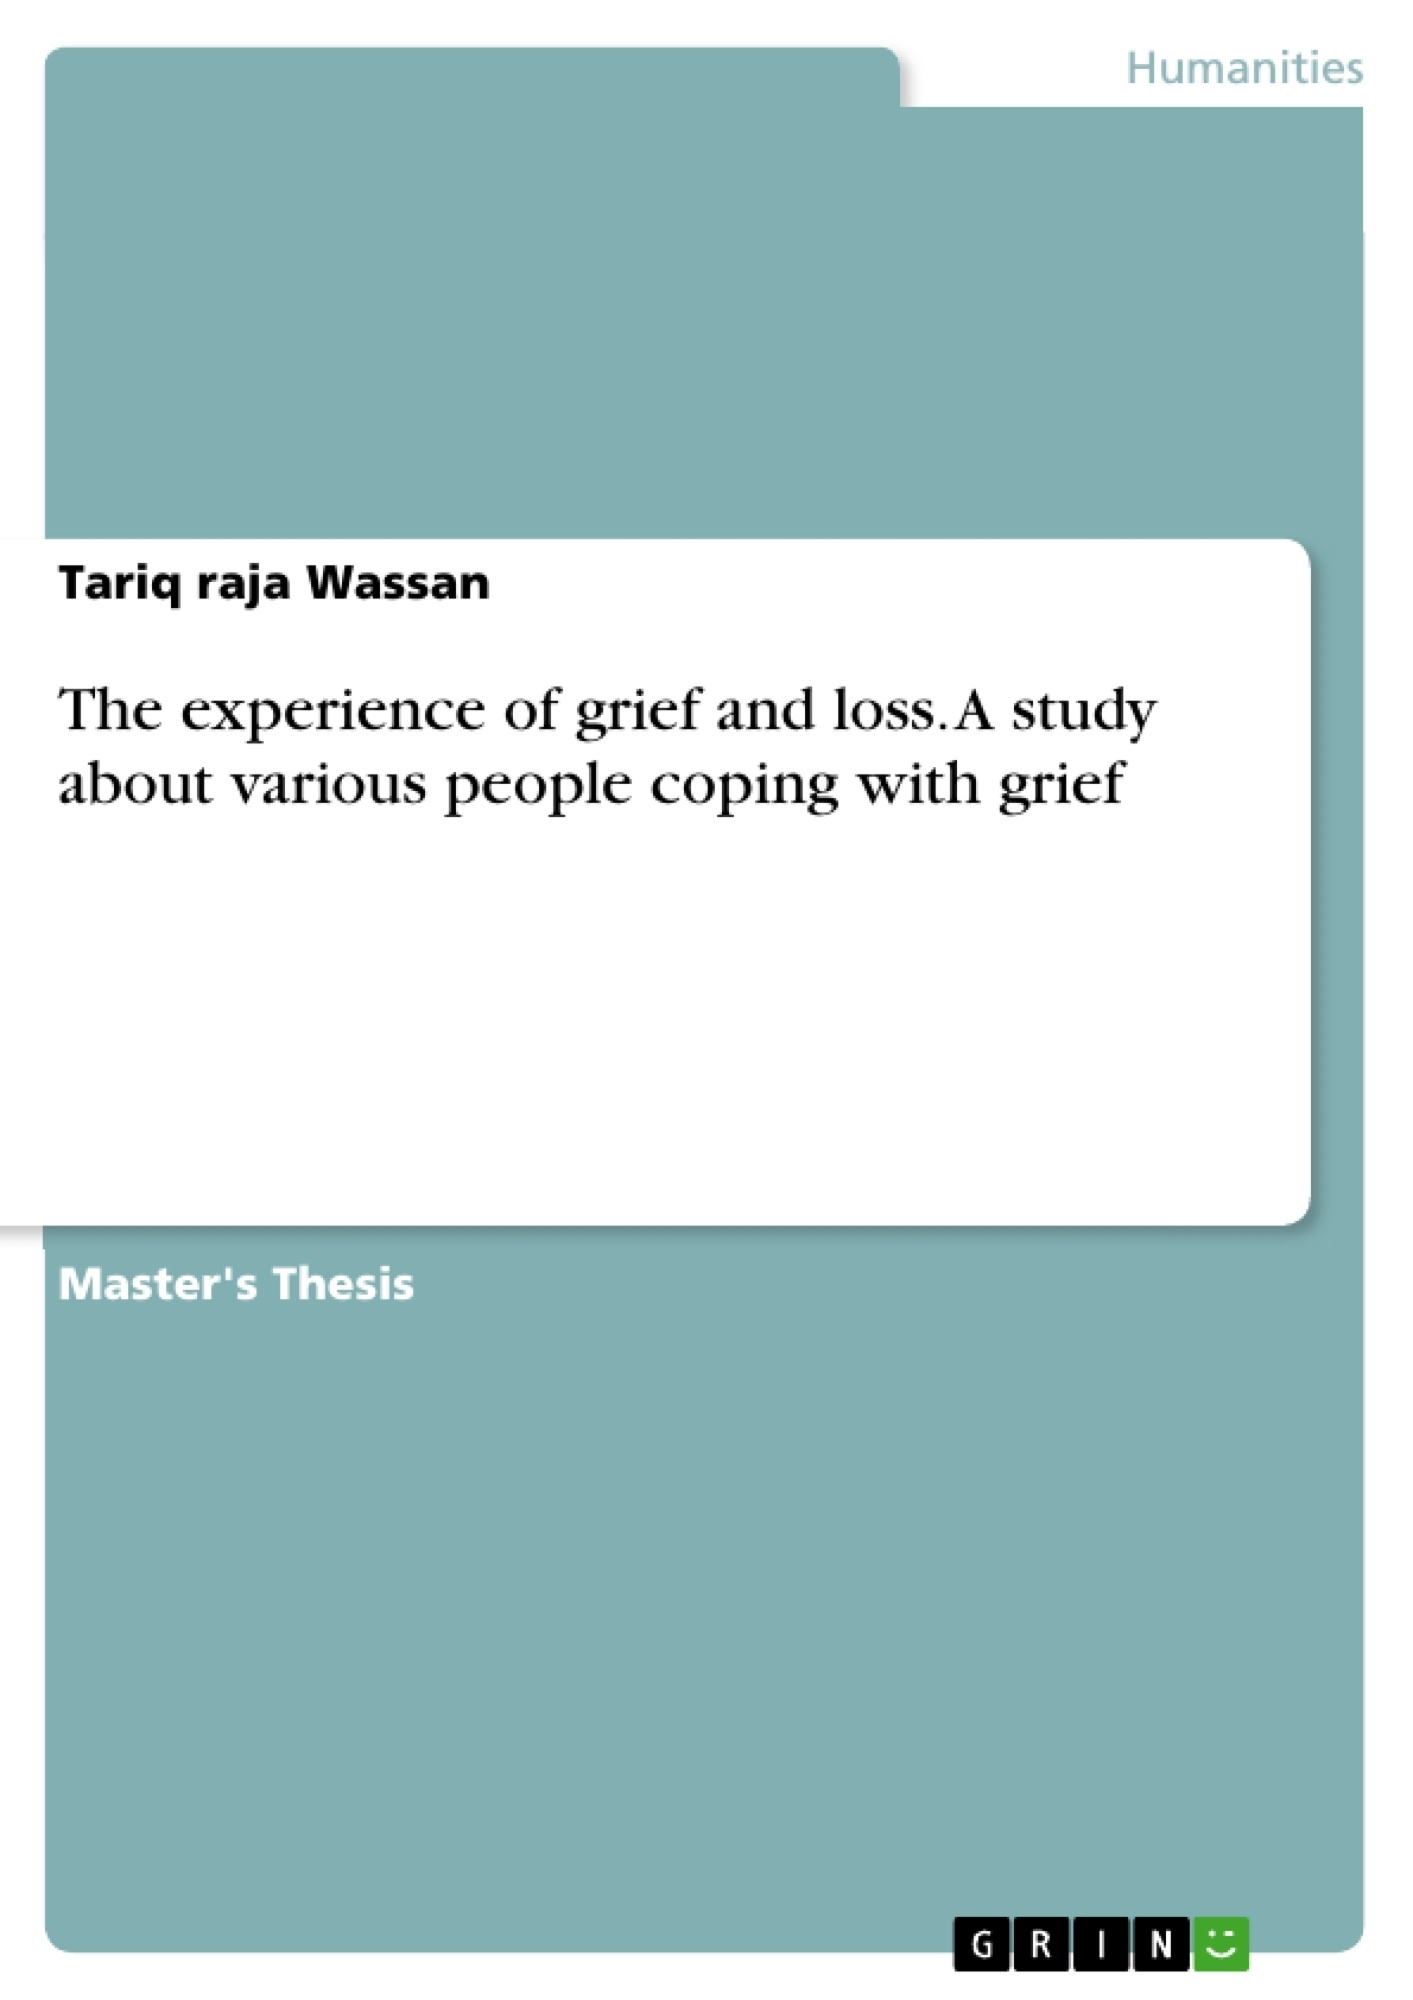 Title: The experience of grief and loss. A study about various people coping with grief